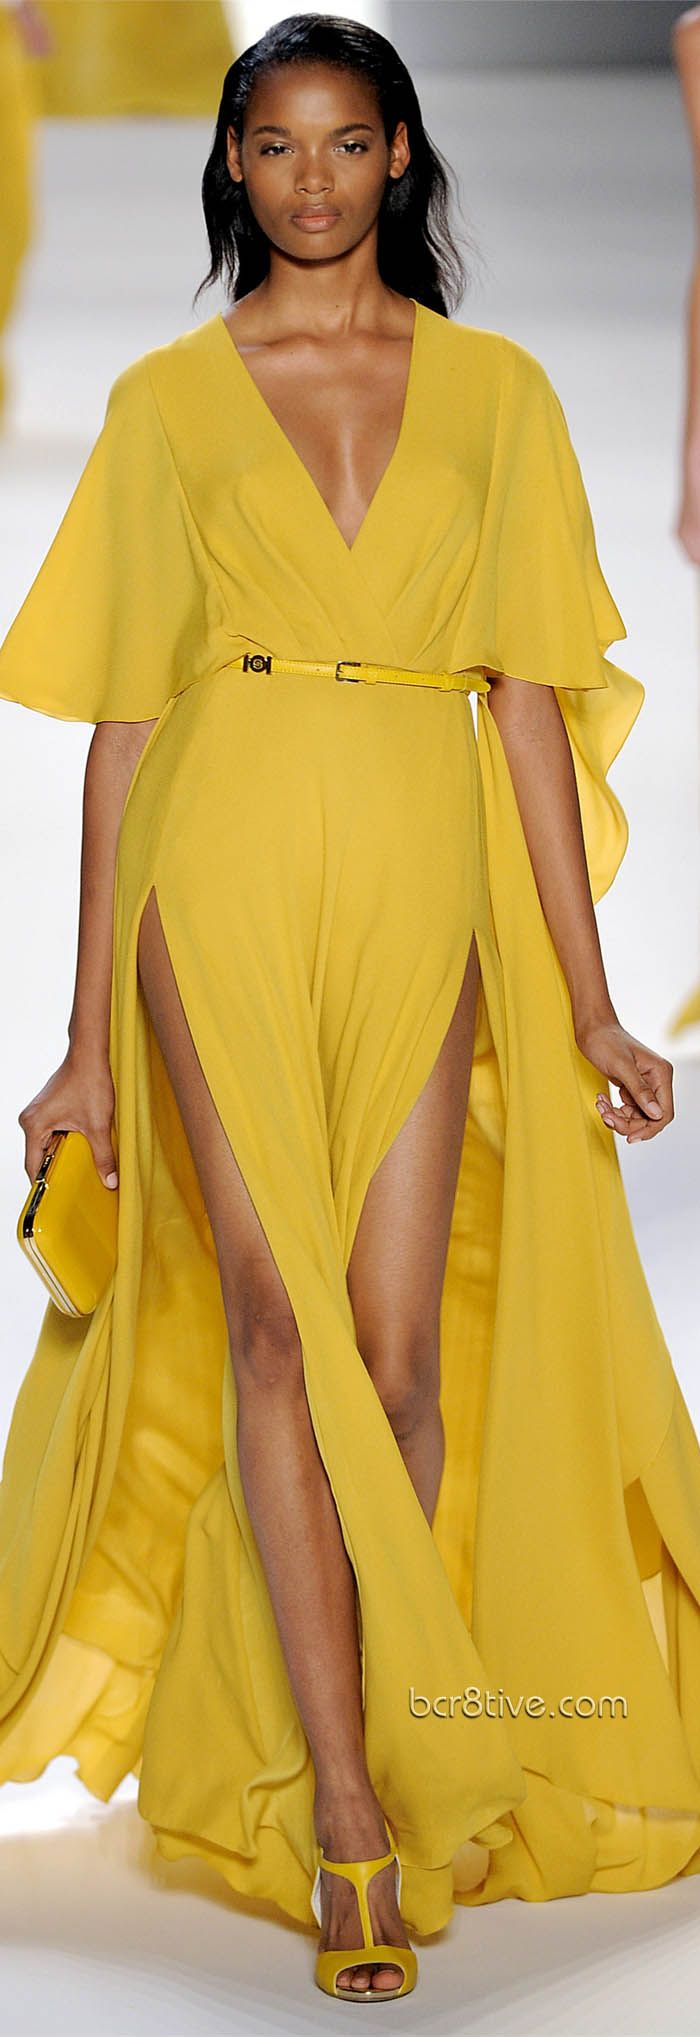 Yellow Summer Stunner - Double Hip Split floor sweeping Gown! Elie Saab Spring Summer 2012 Ready to Wear